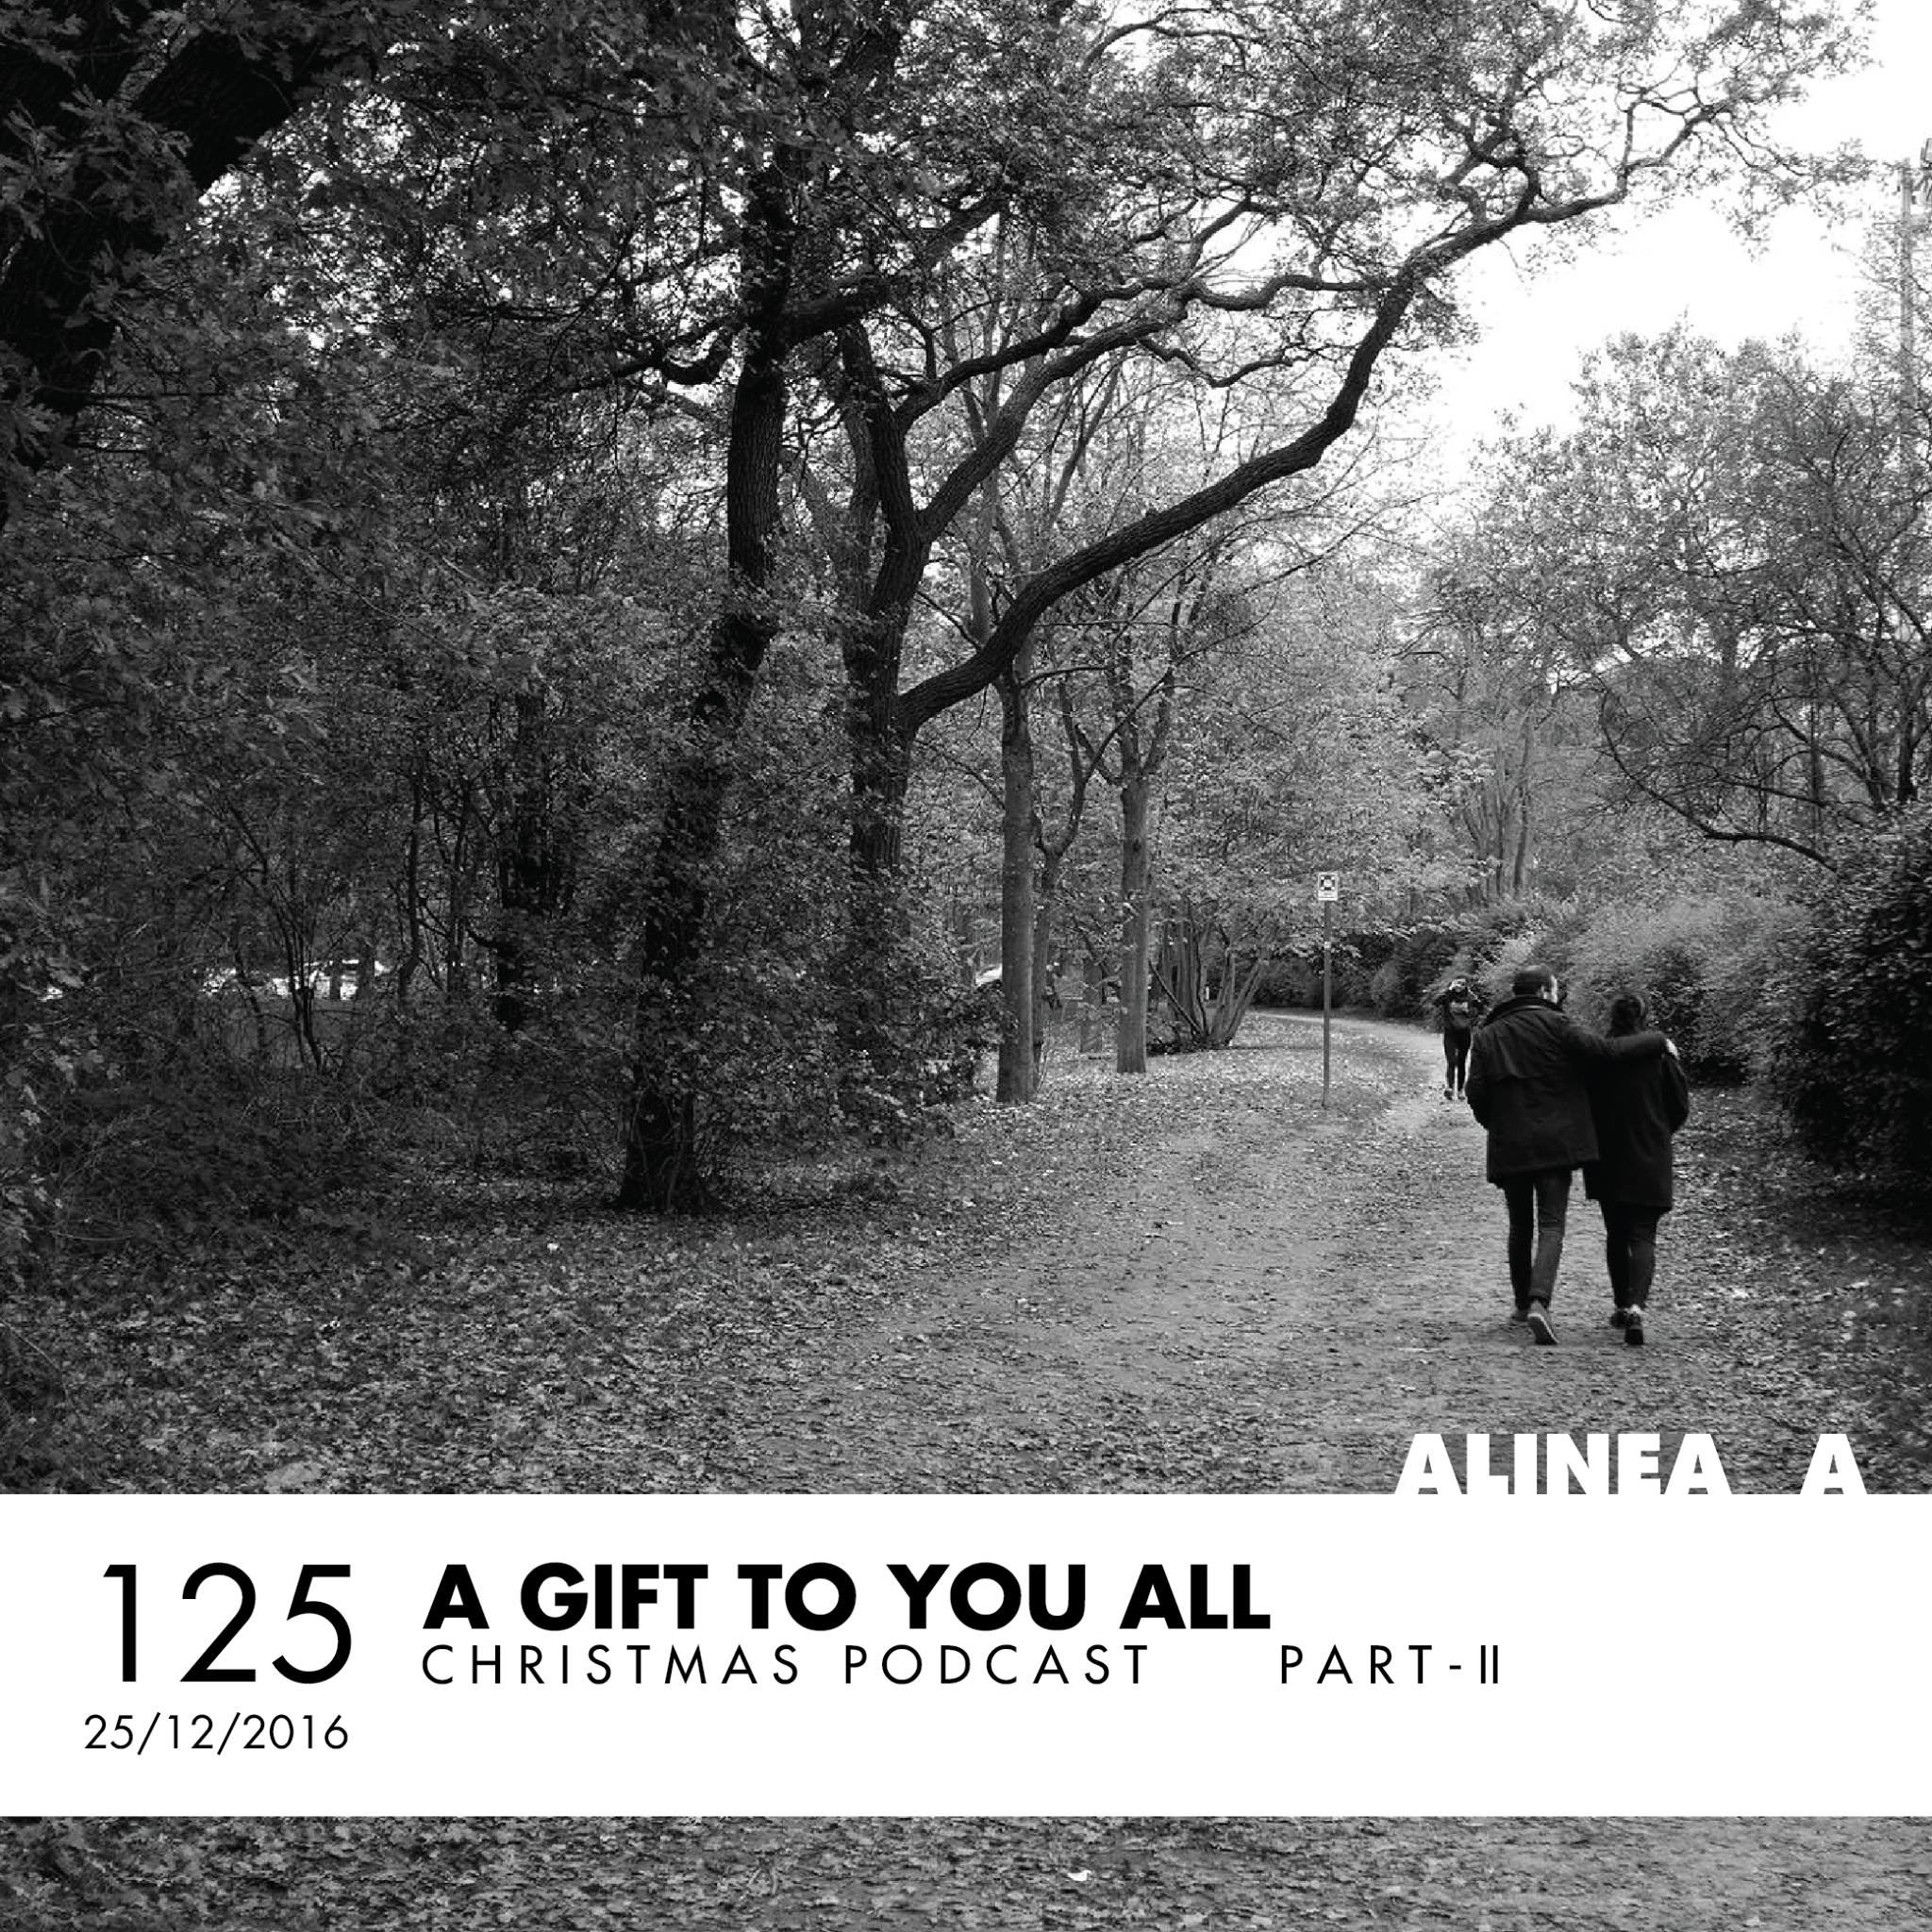 Christmas Podcast - Part 2 of 2